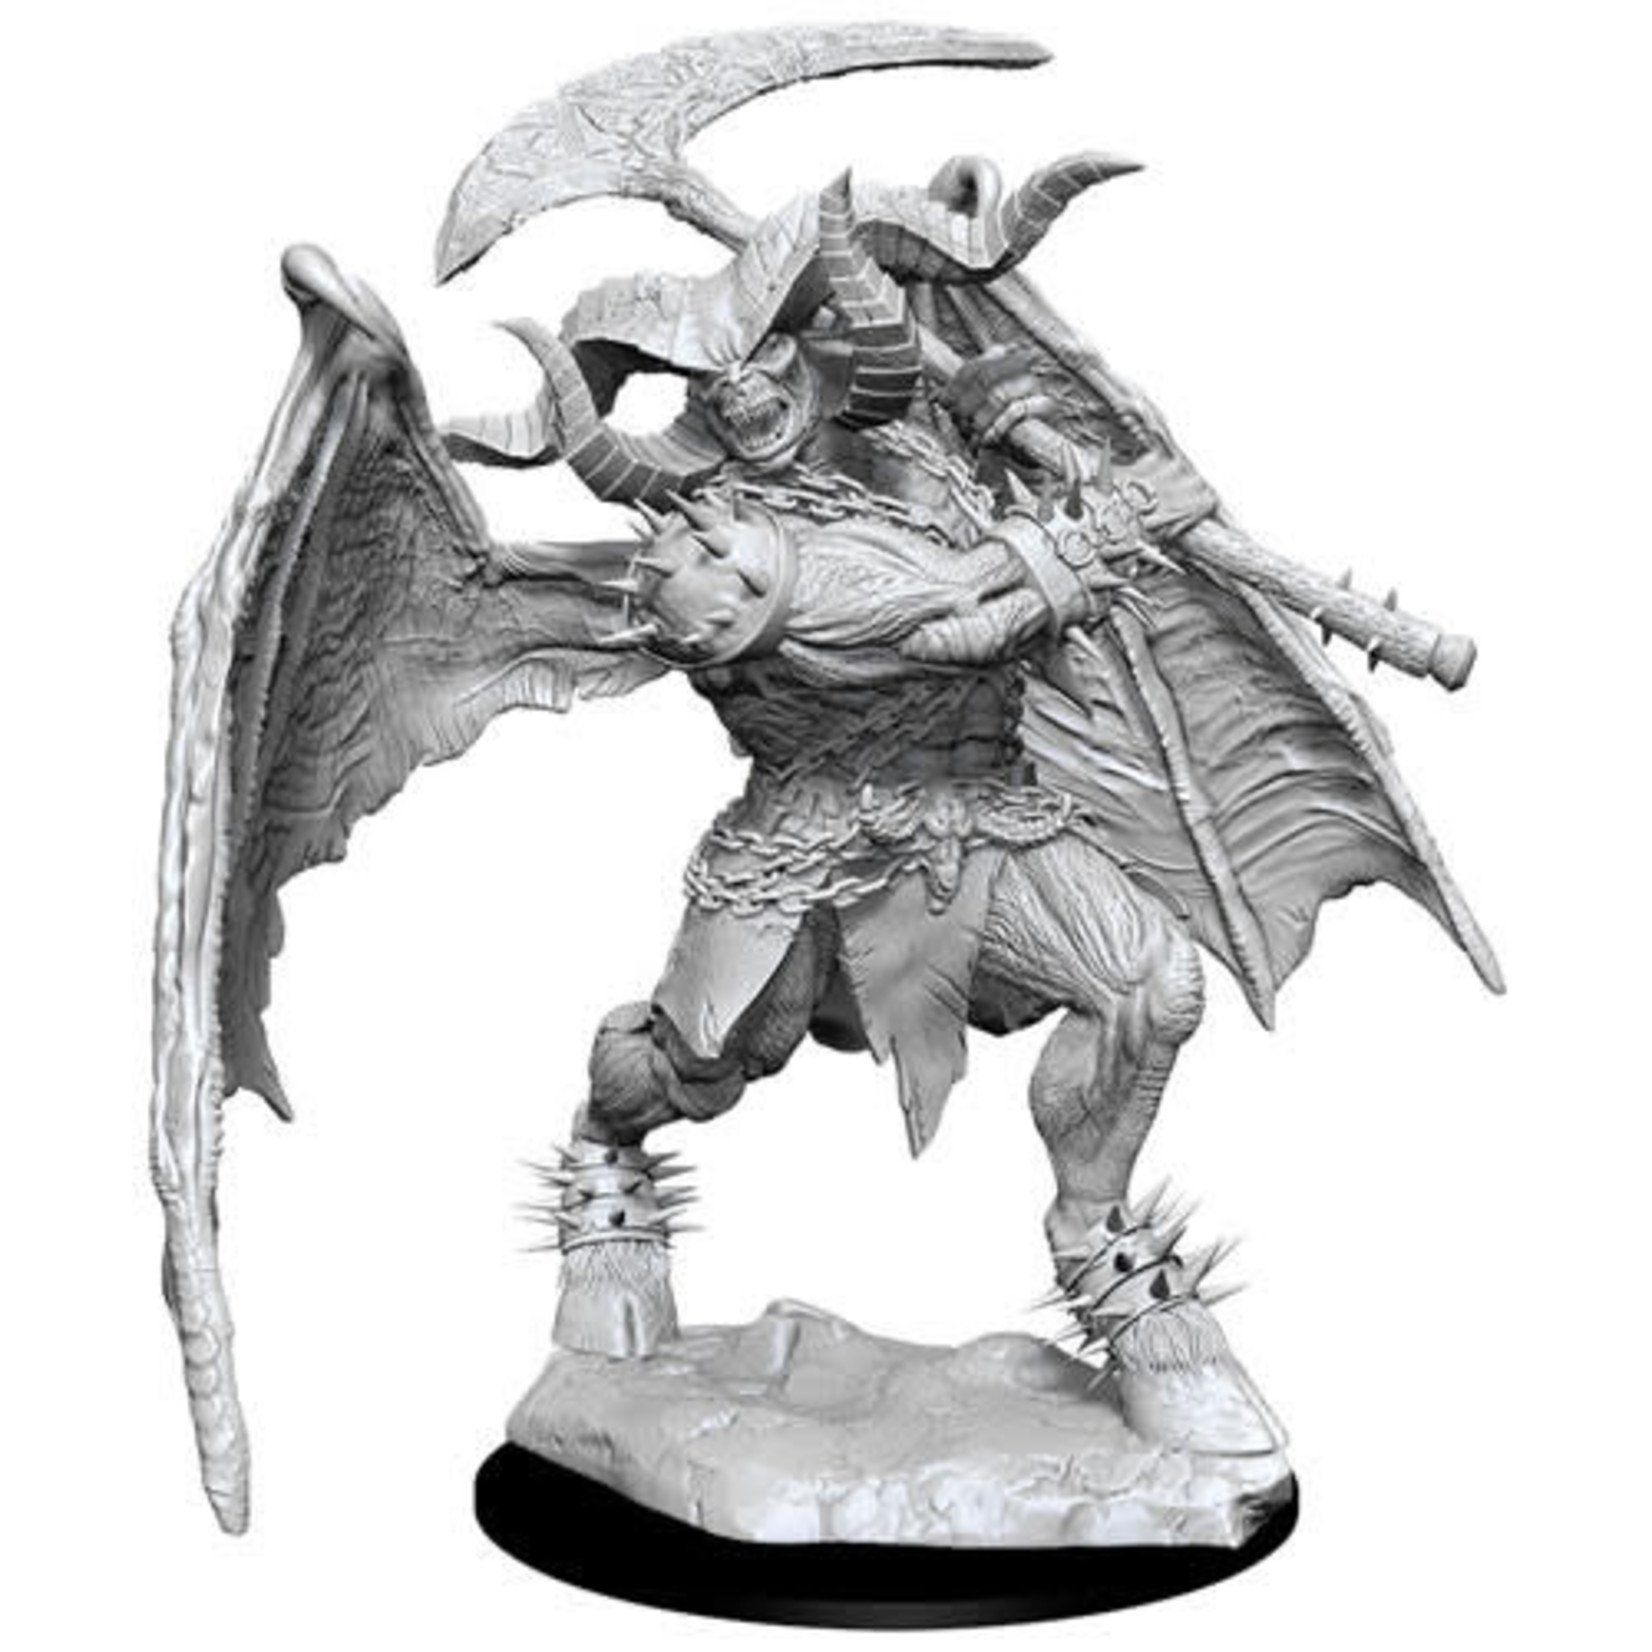 D&D Unpainted Minis: Rakdos, Lord of Riots (Wave 13)